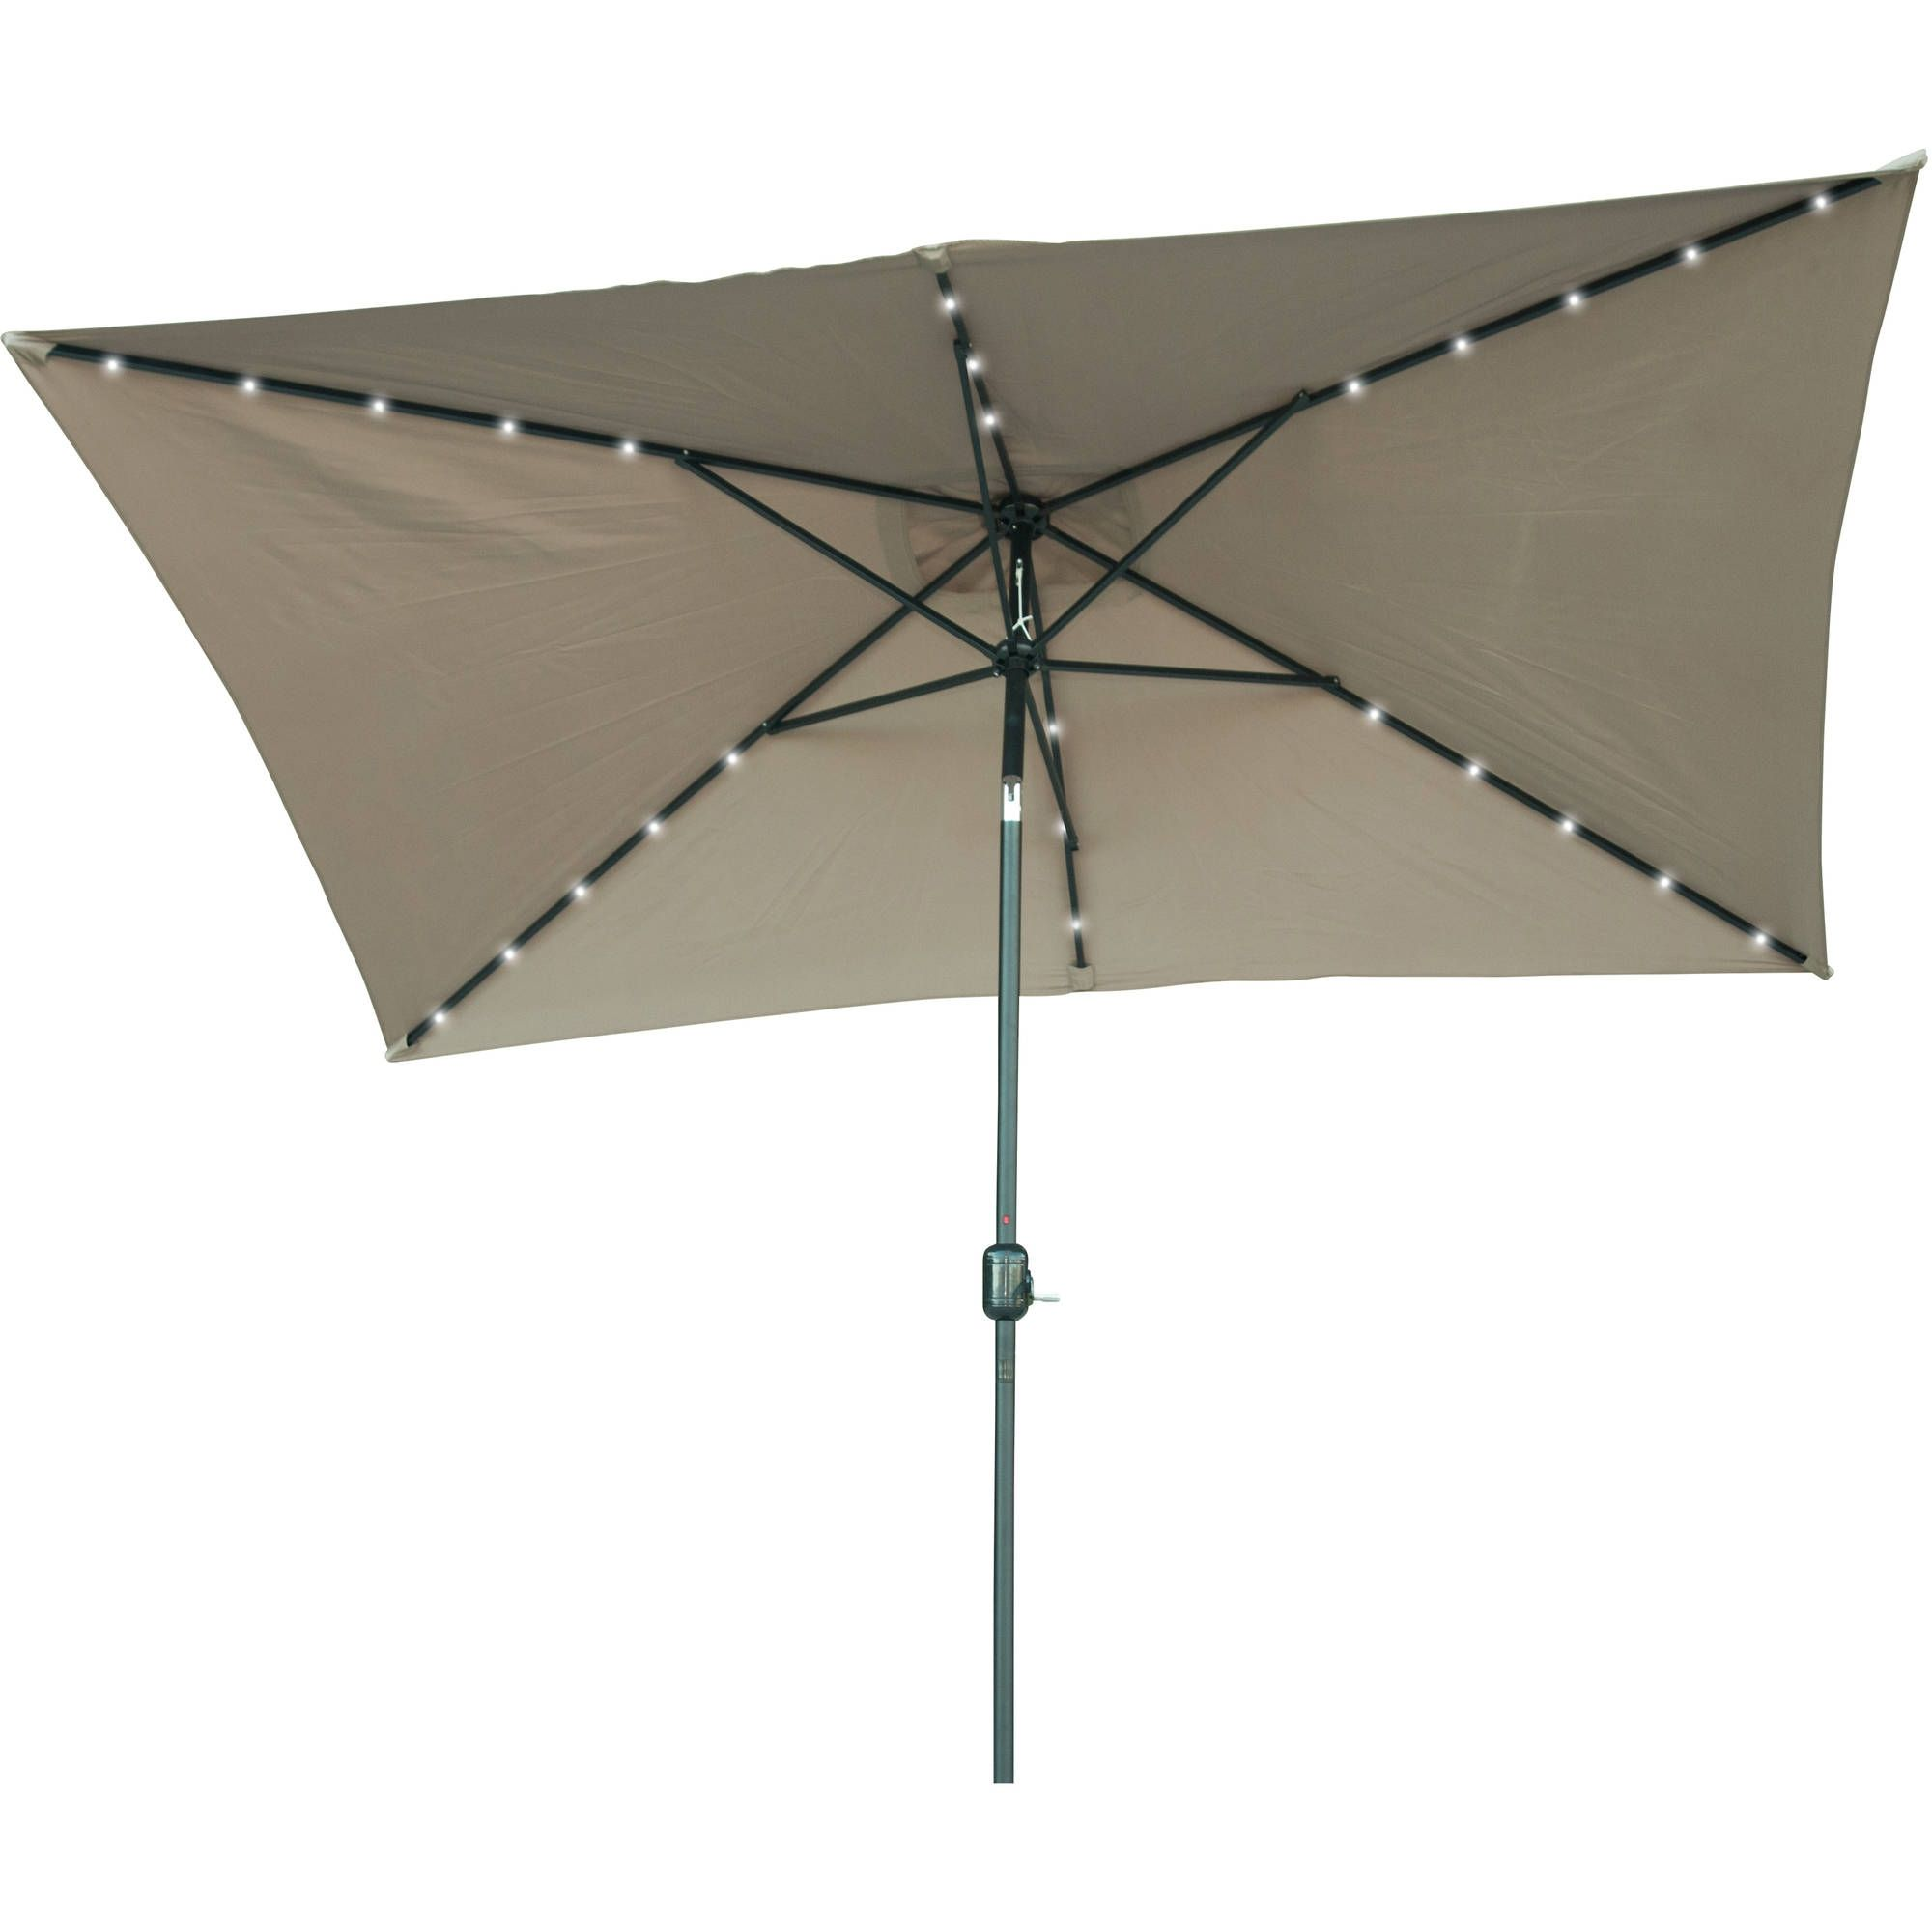 Rectangular Patio Umbrella With Solar Lights Classy Rectangular Patio Umbrella With Solar Lights  Patio Decor Review